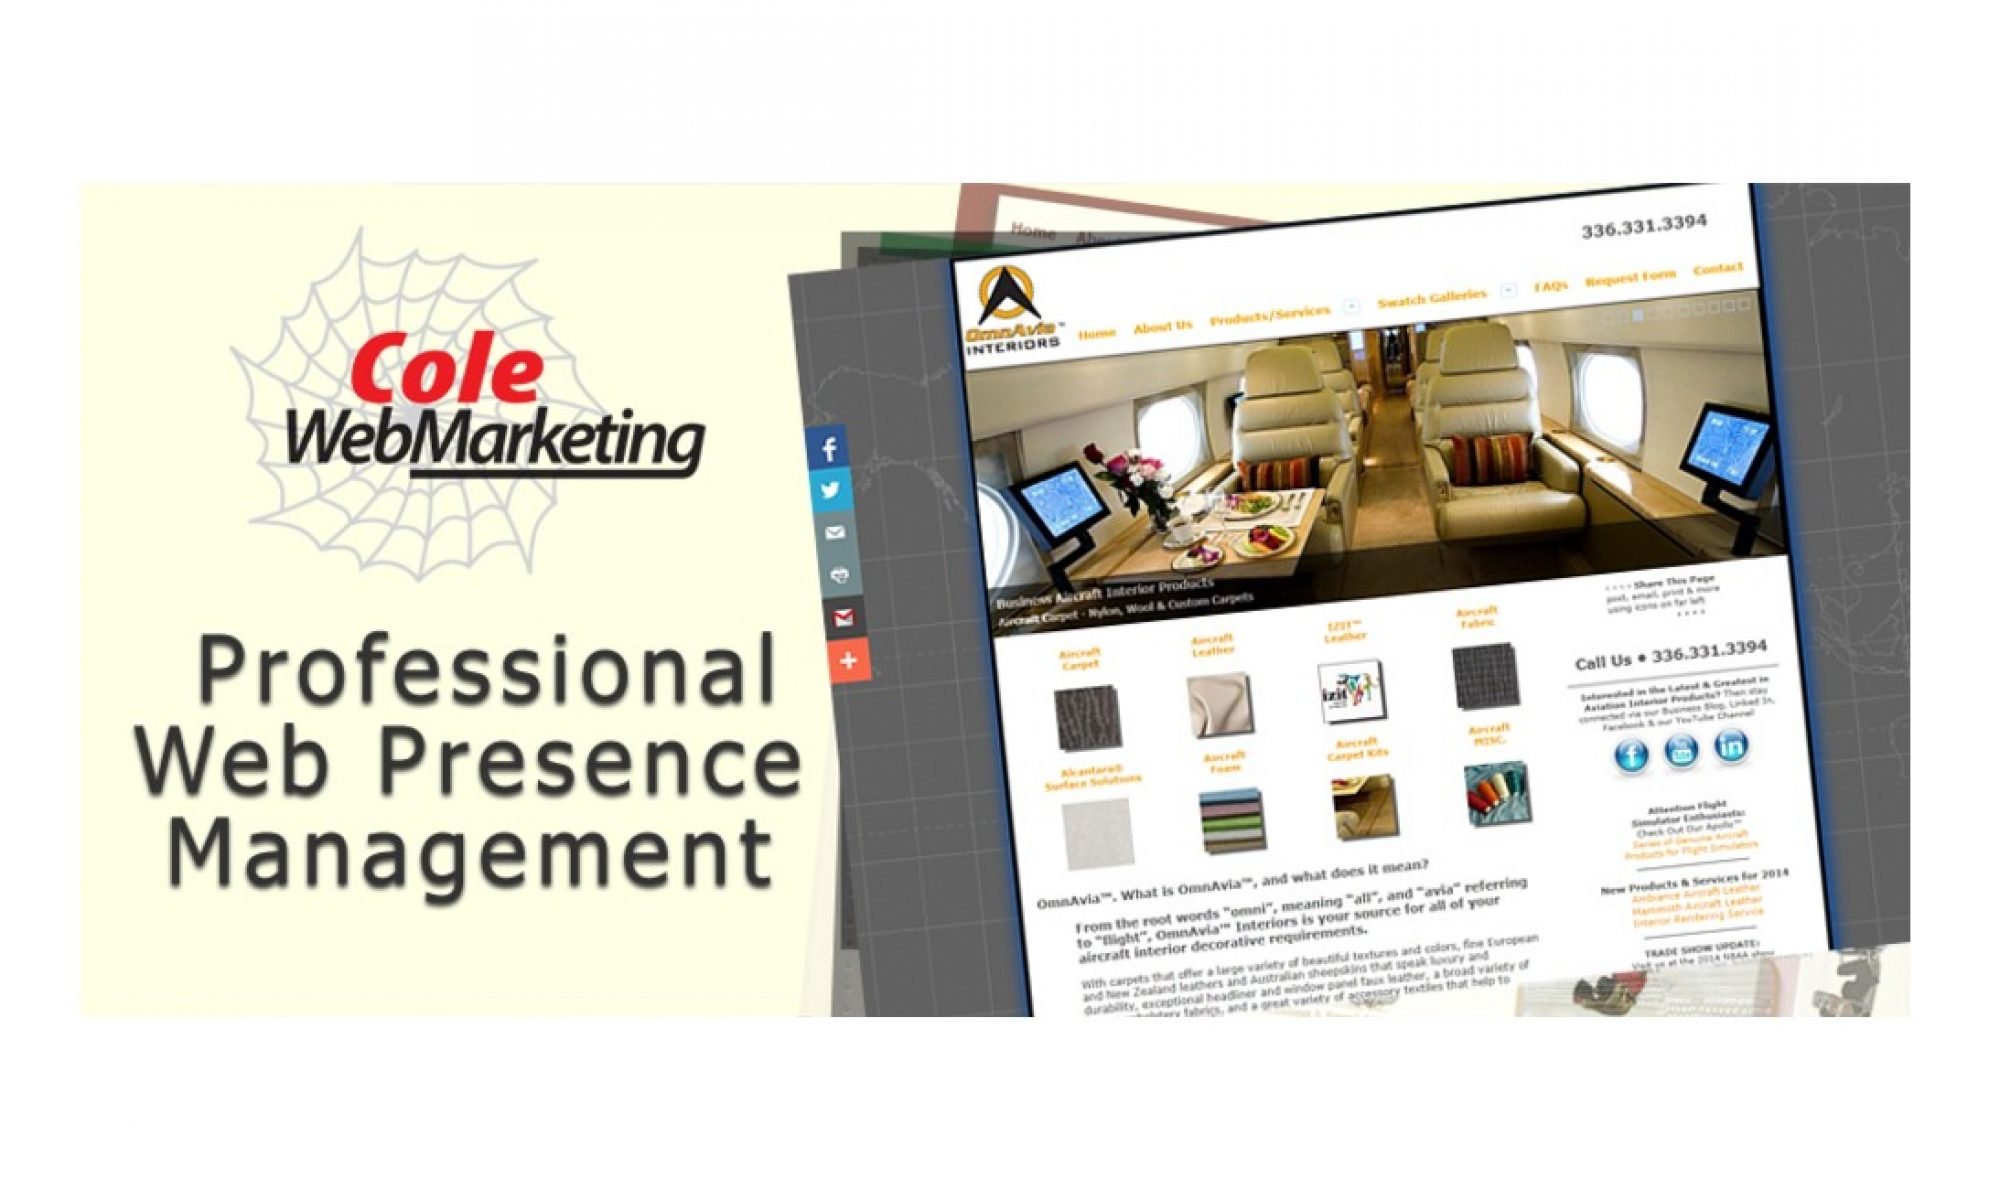 Comprehensive Web Presence Management